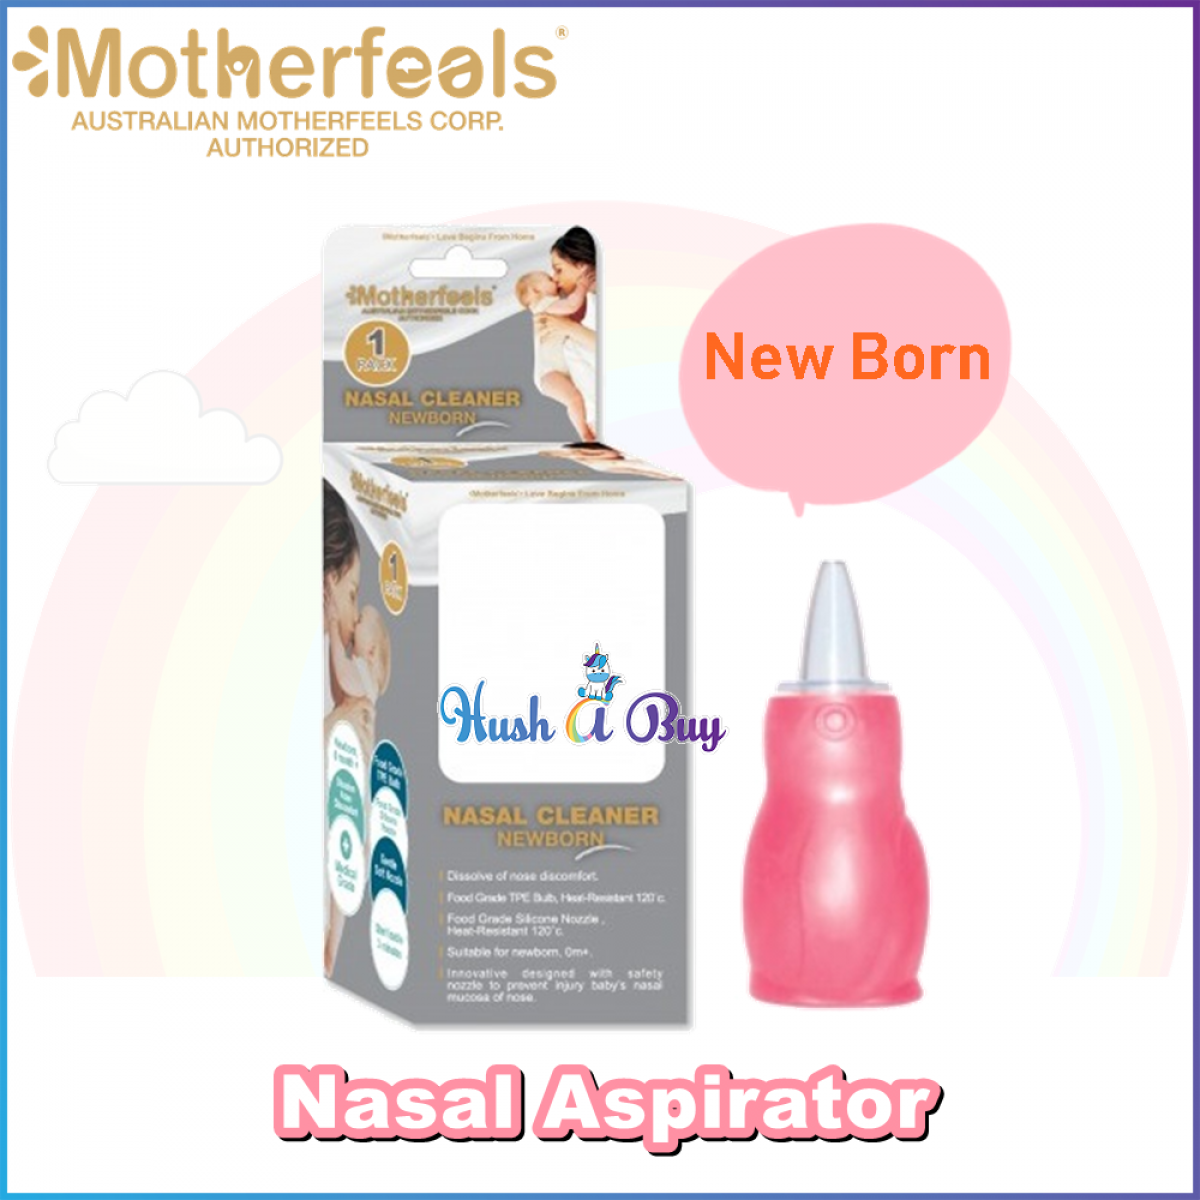 Motherfeels Nasal Aspirator or Nose Cleaner